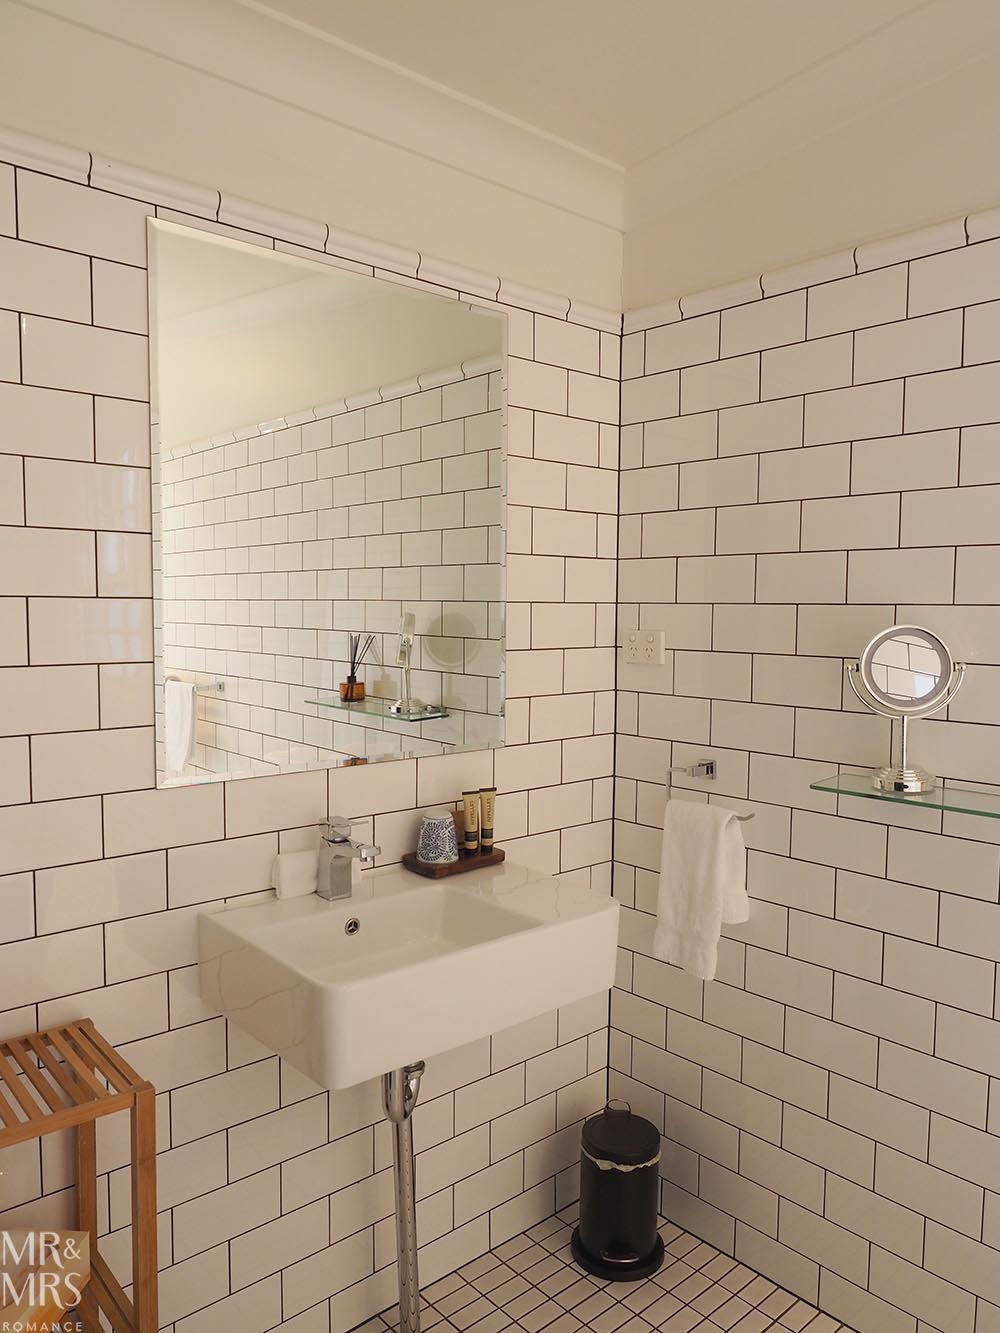 Where to stay in the Hunter Region, NSW - The Bronte Boutique Hotel, Morpeth - bathroom